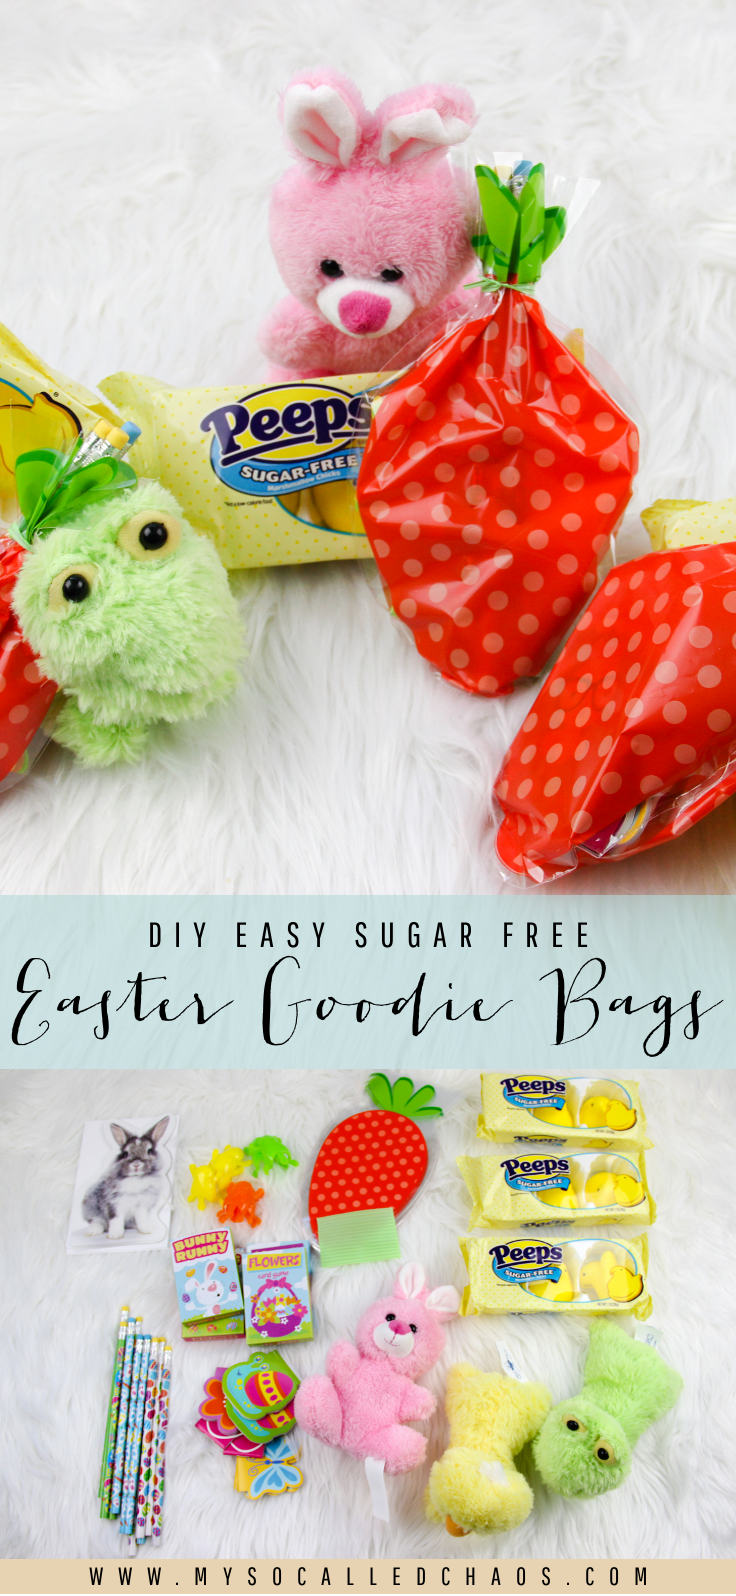 Diy easter gift bags goodie bags and sugar free wanna put together some cute easter goodie bags that are cheap easy and sugar free negle Choice Image